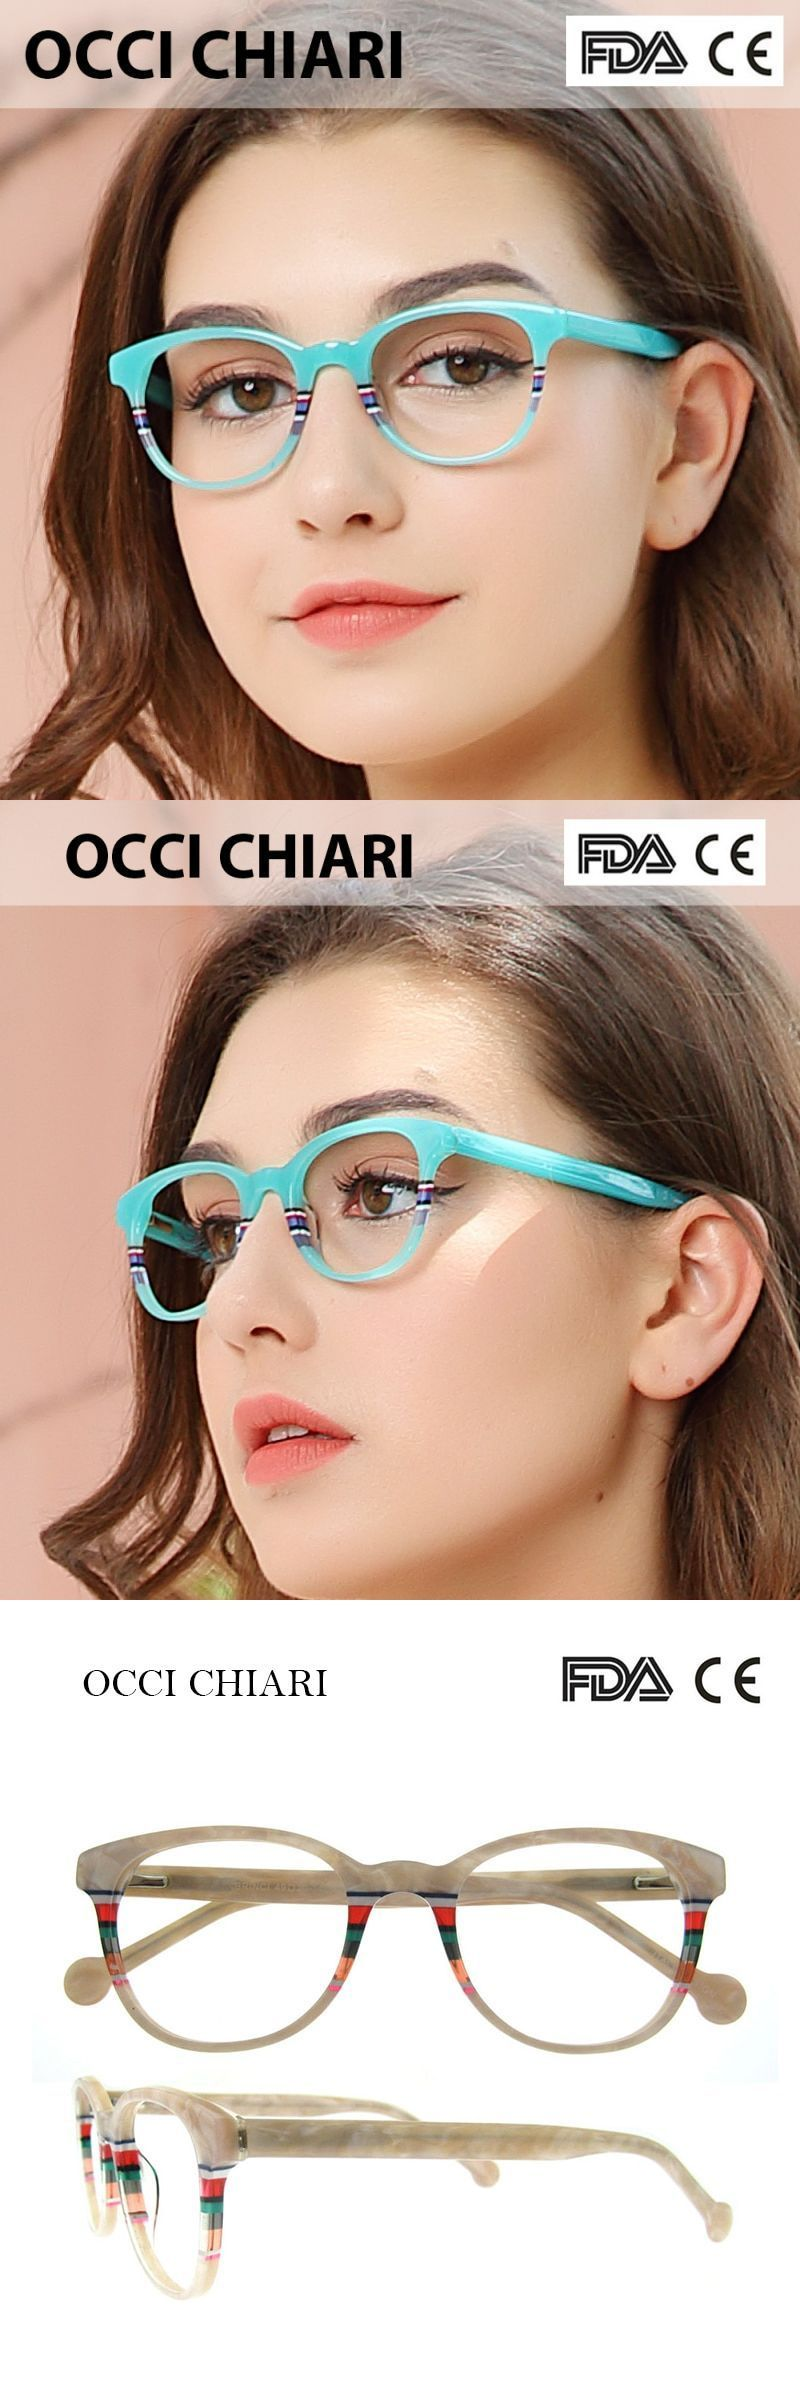 ad2813d11723 Recommend good quality italy design acetate navy stripes spring hinge  eyeglasses women eyewear clear glasses frame w-corro  frames  eyewear   accessories ...